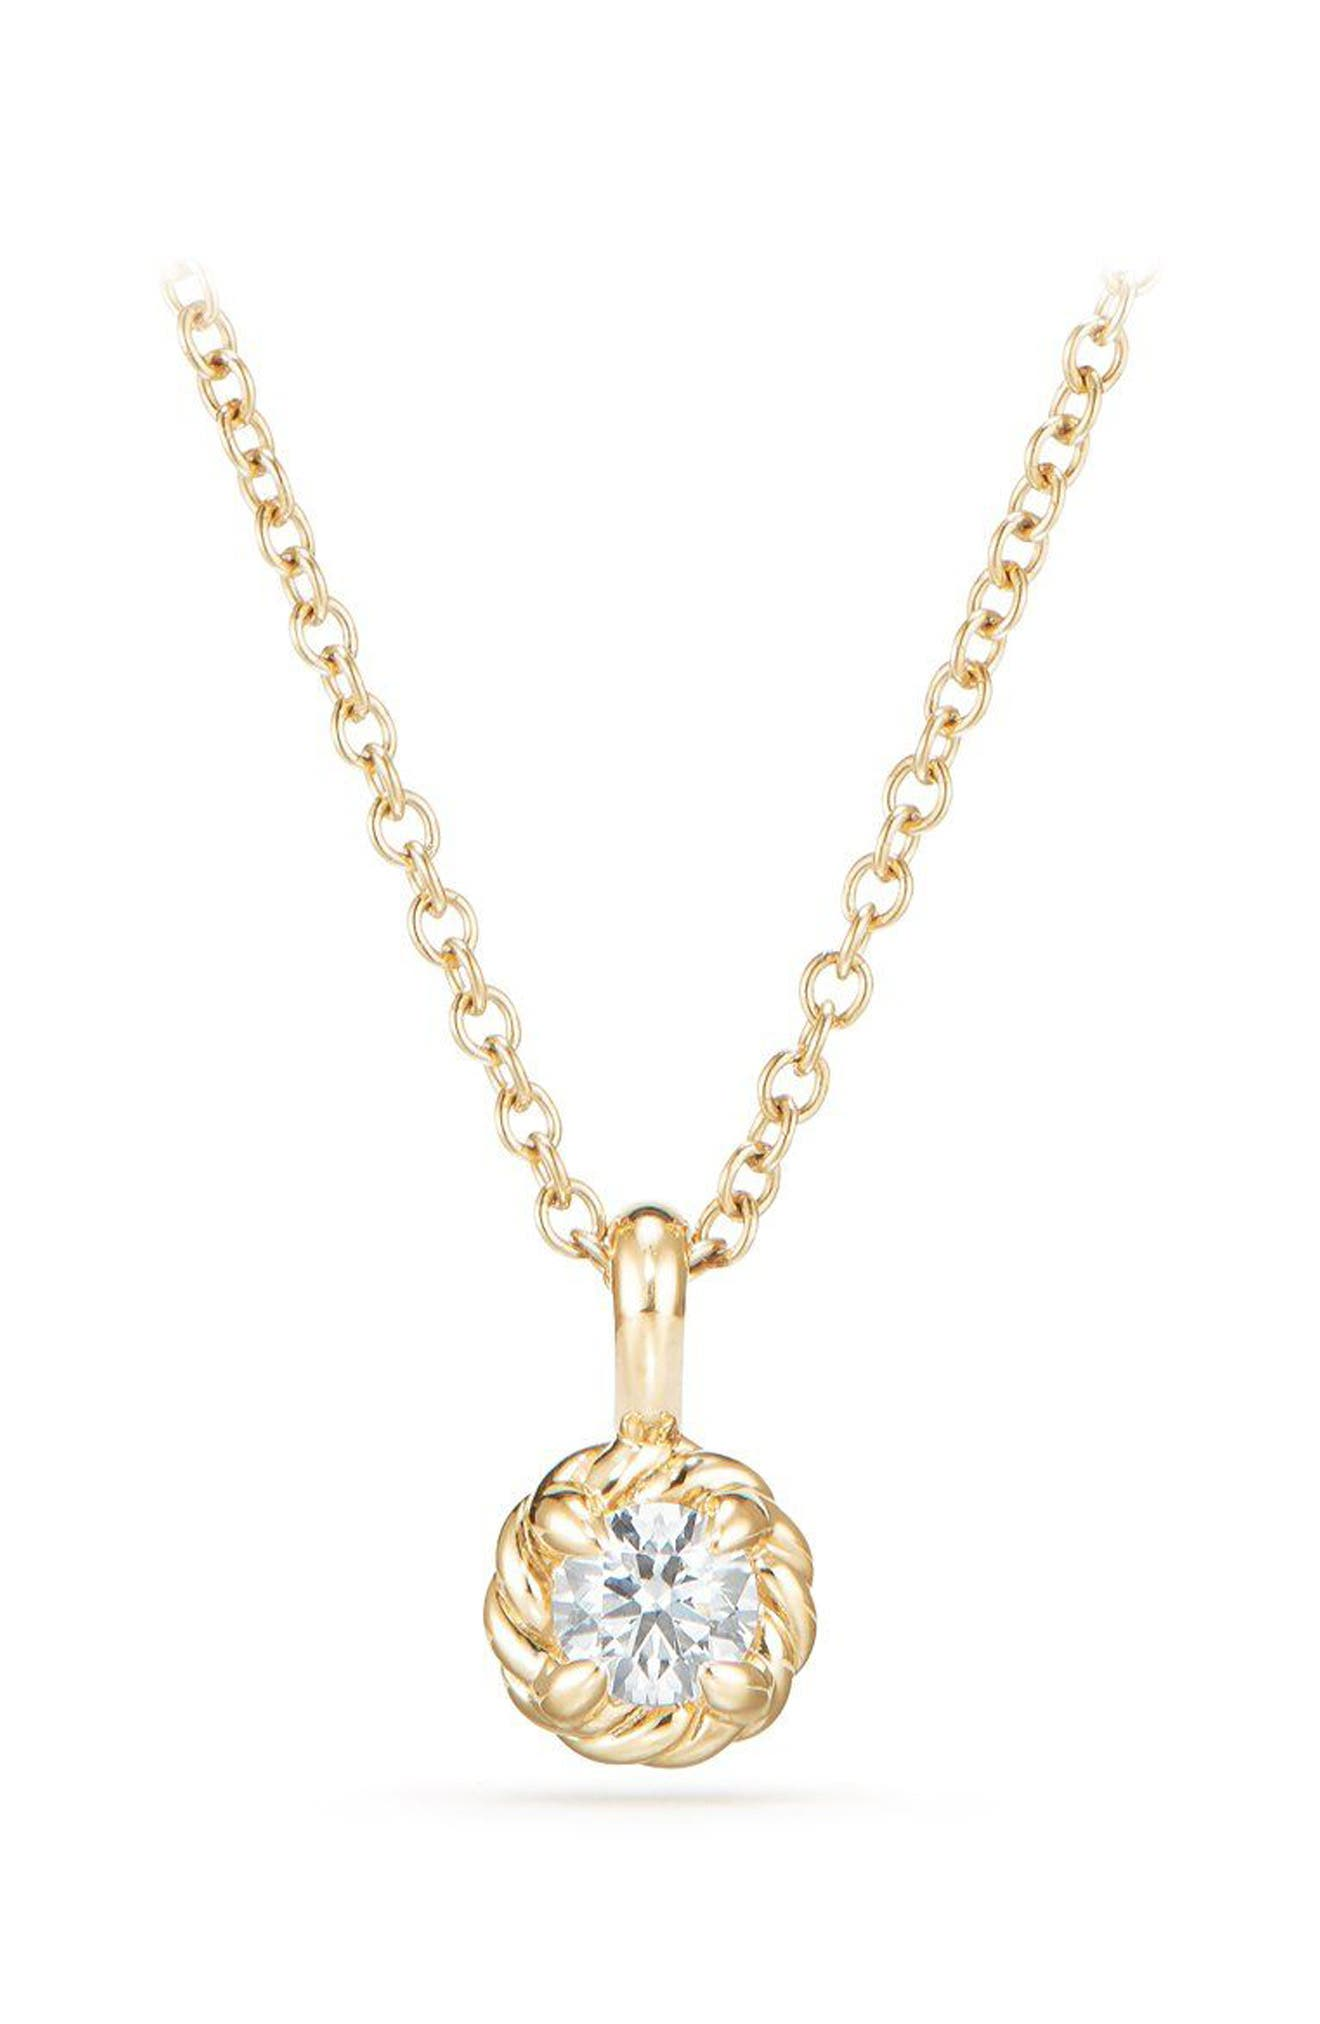 David Yurman Cable Collectibles® Kids' Birthstone Necklace in 18K Gold